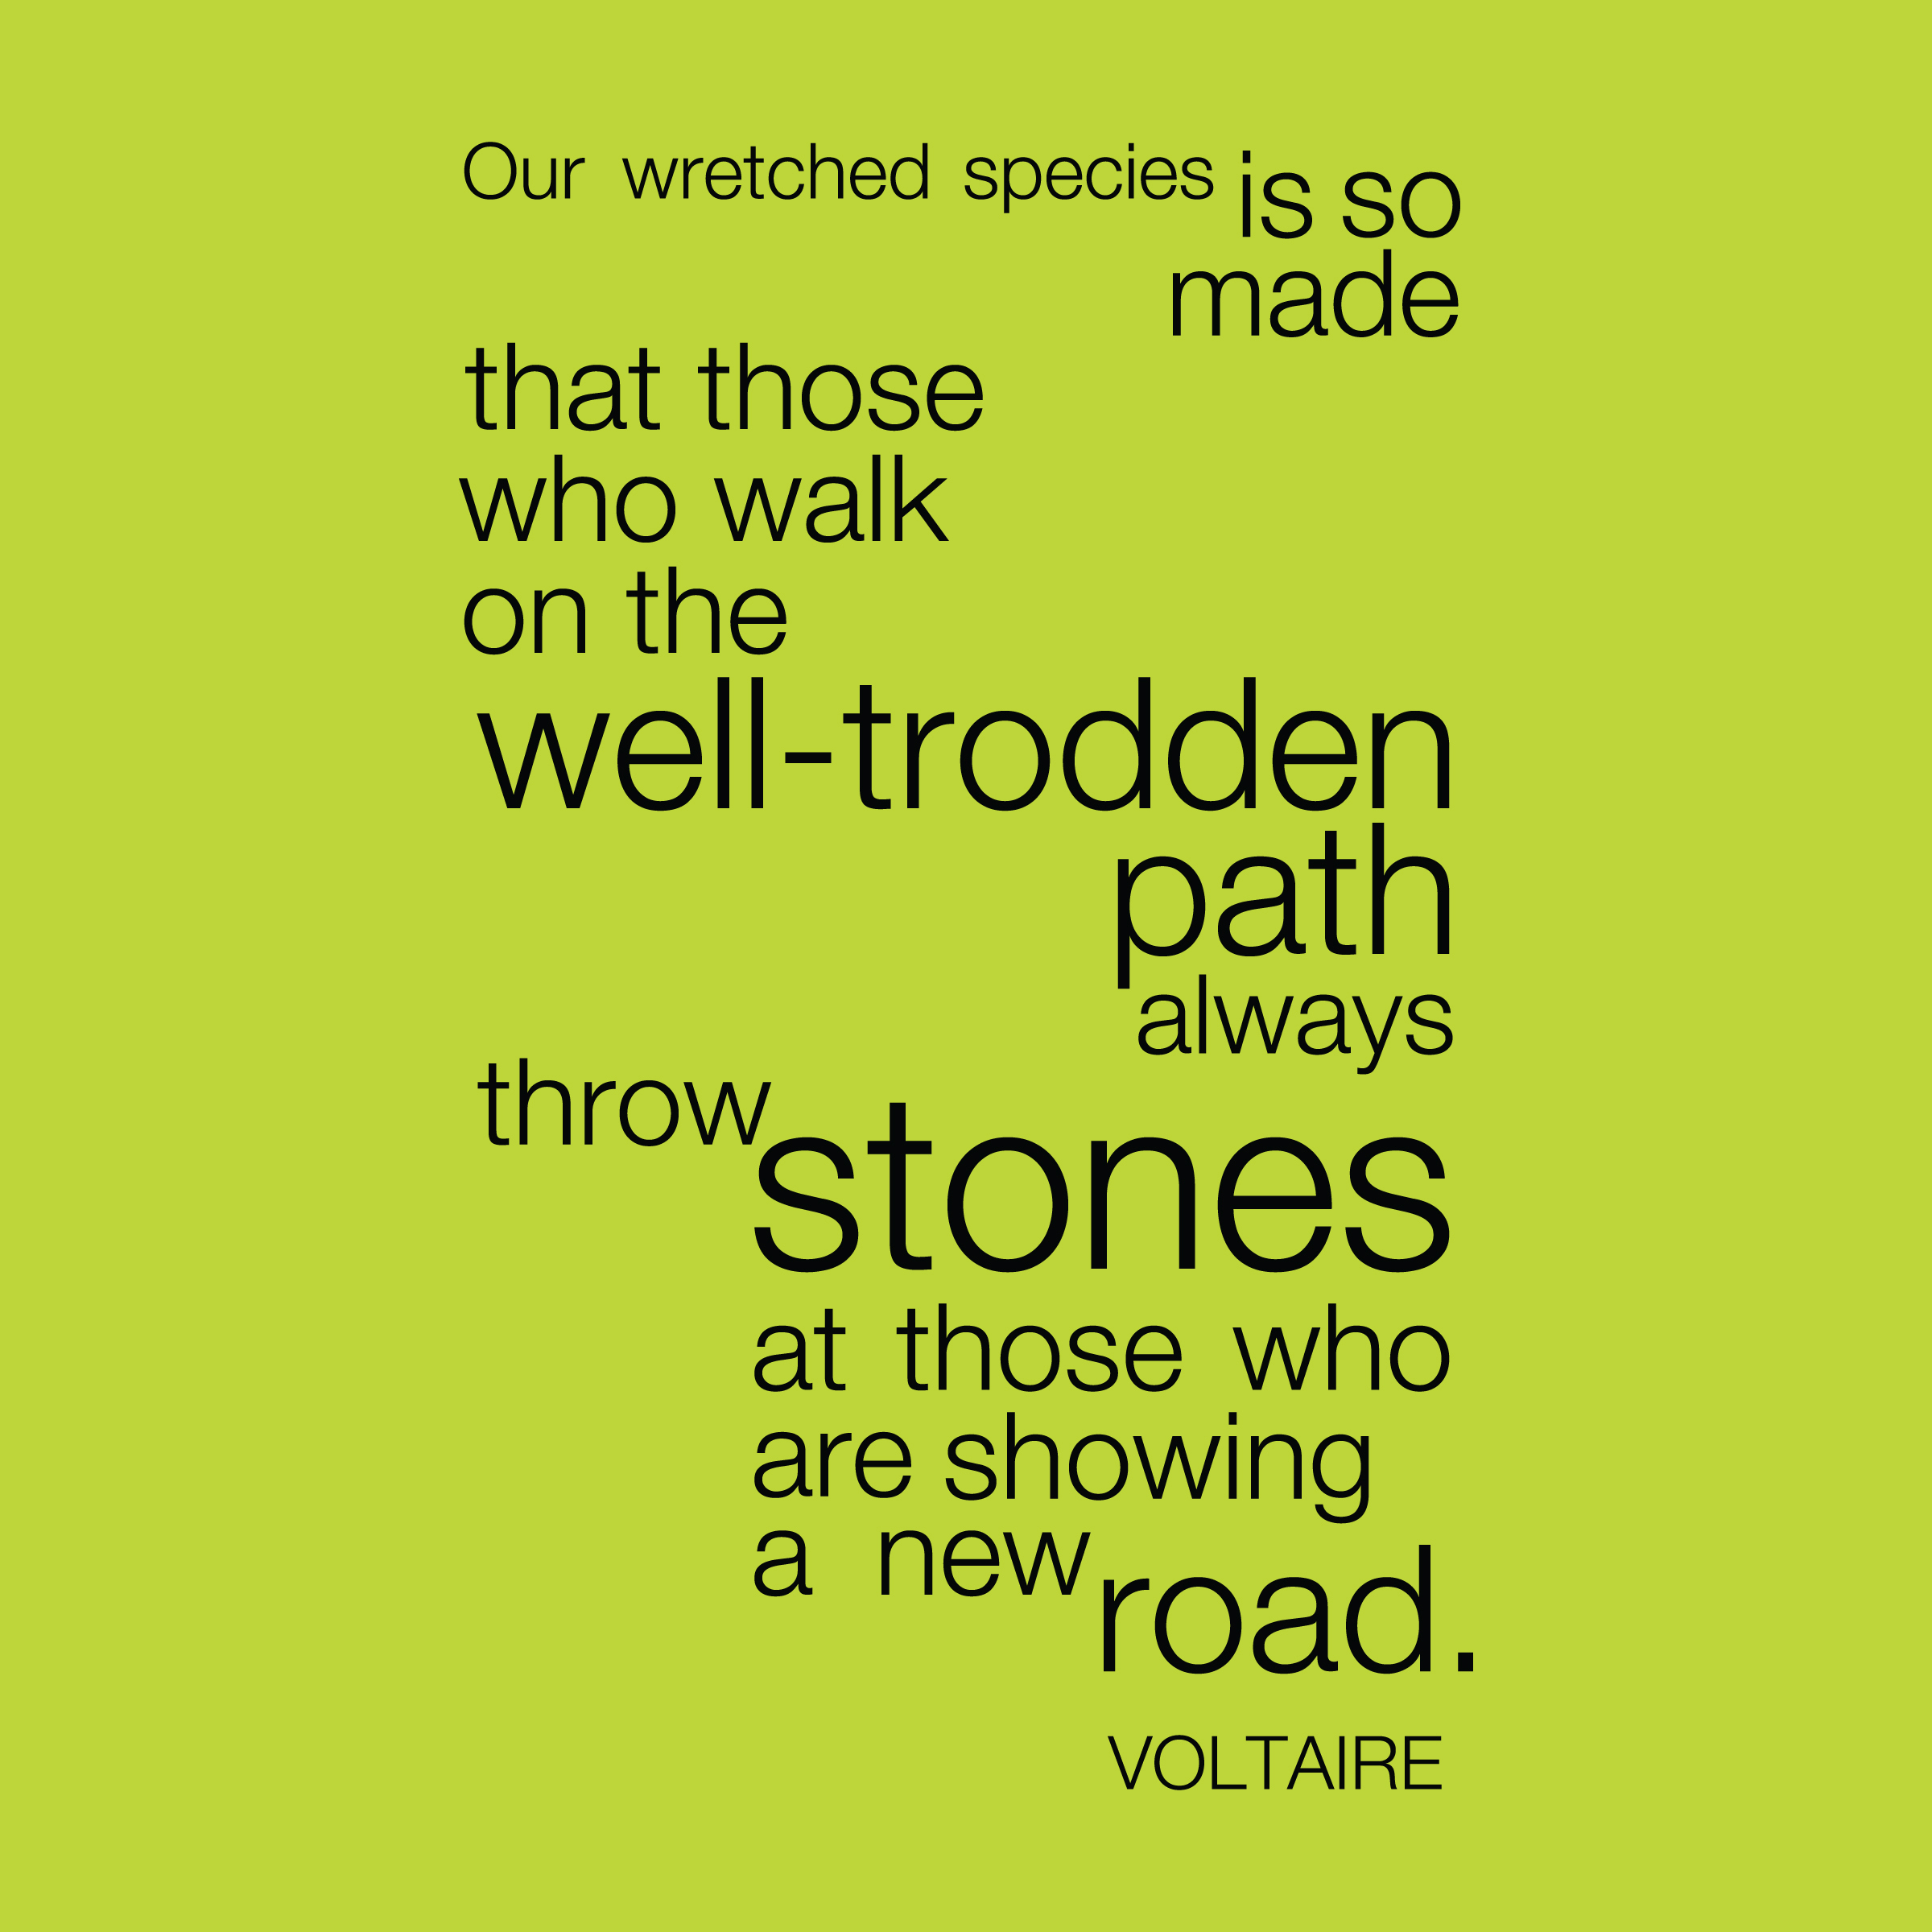 Quotes Voltaire 8 Ancient Voltaire Quotes To Ponder  Ignore Limits